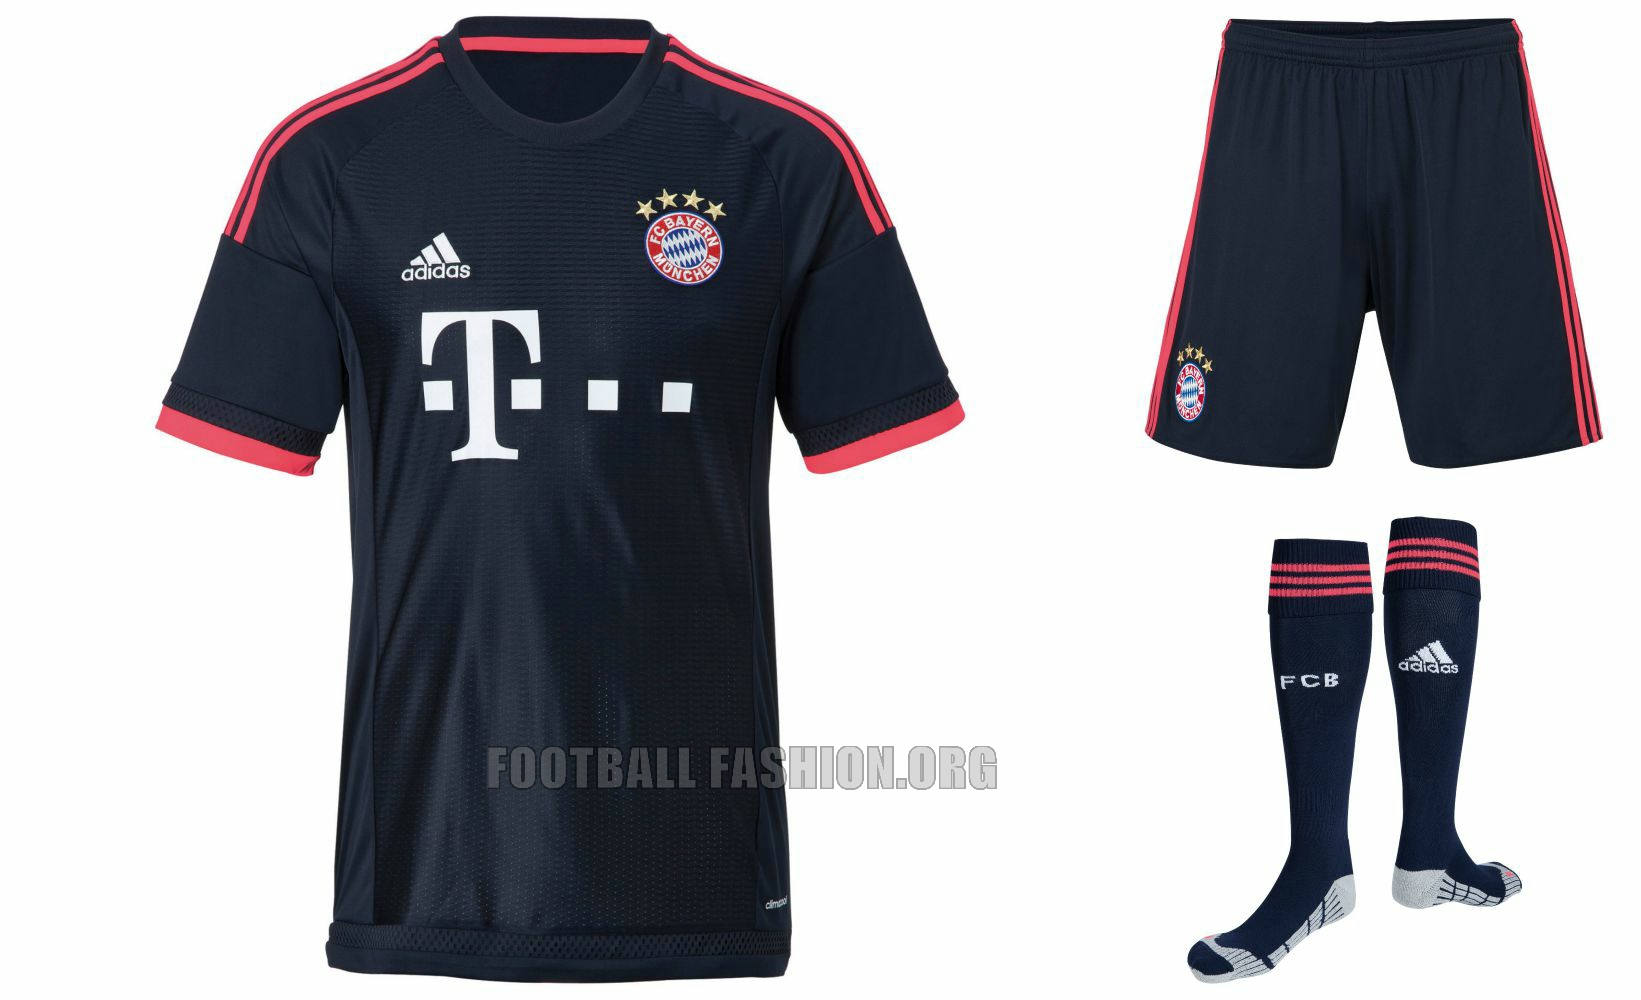 separation shoes 1c60a f4bb9 ireland champions league bayern jersey 81c0f 4d0af